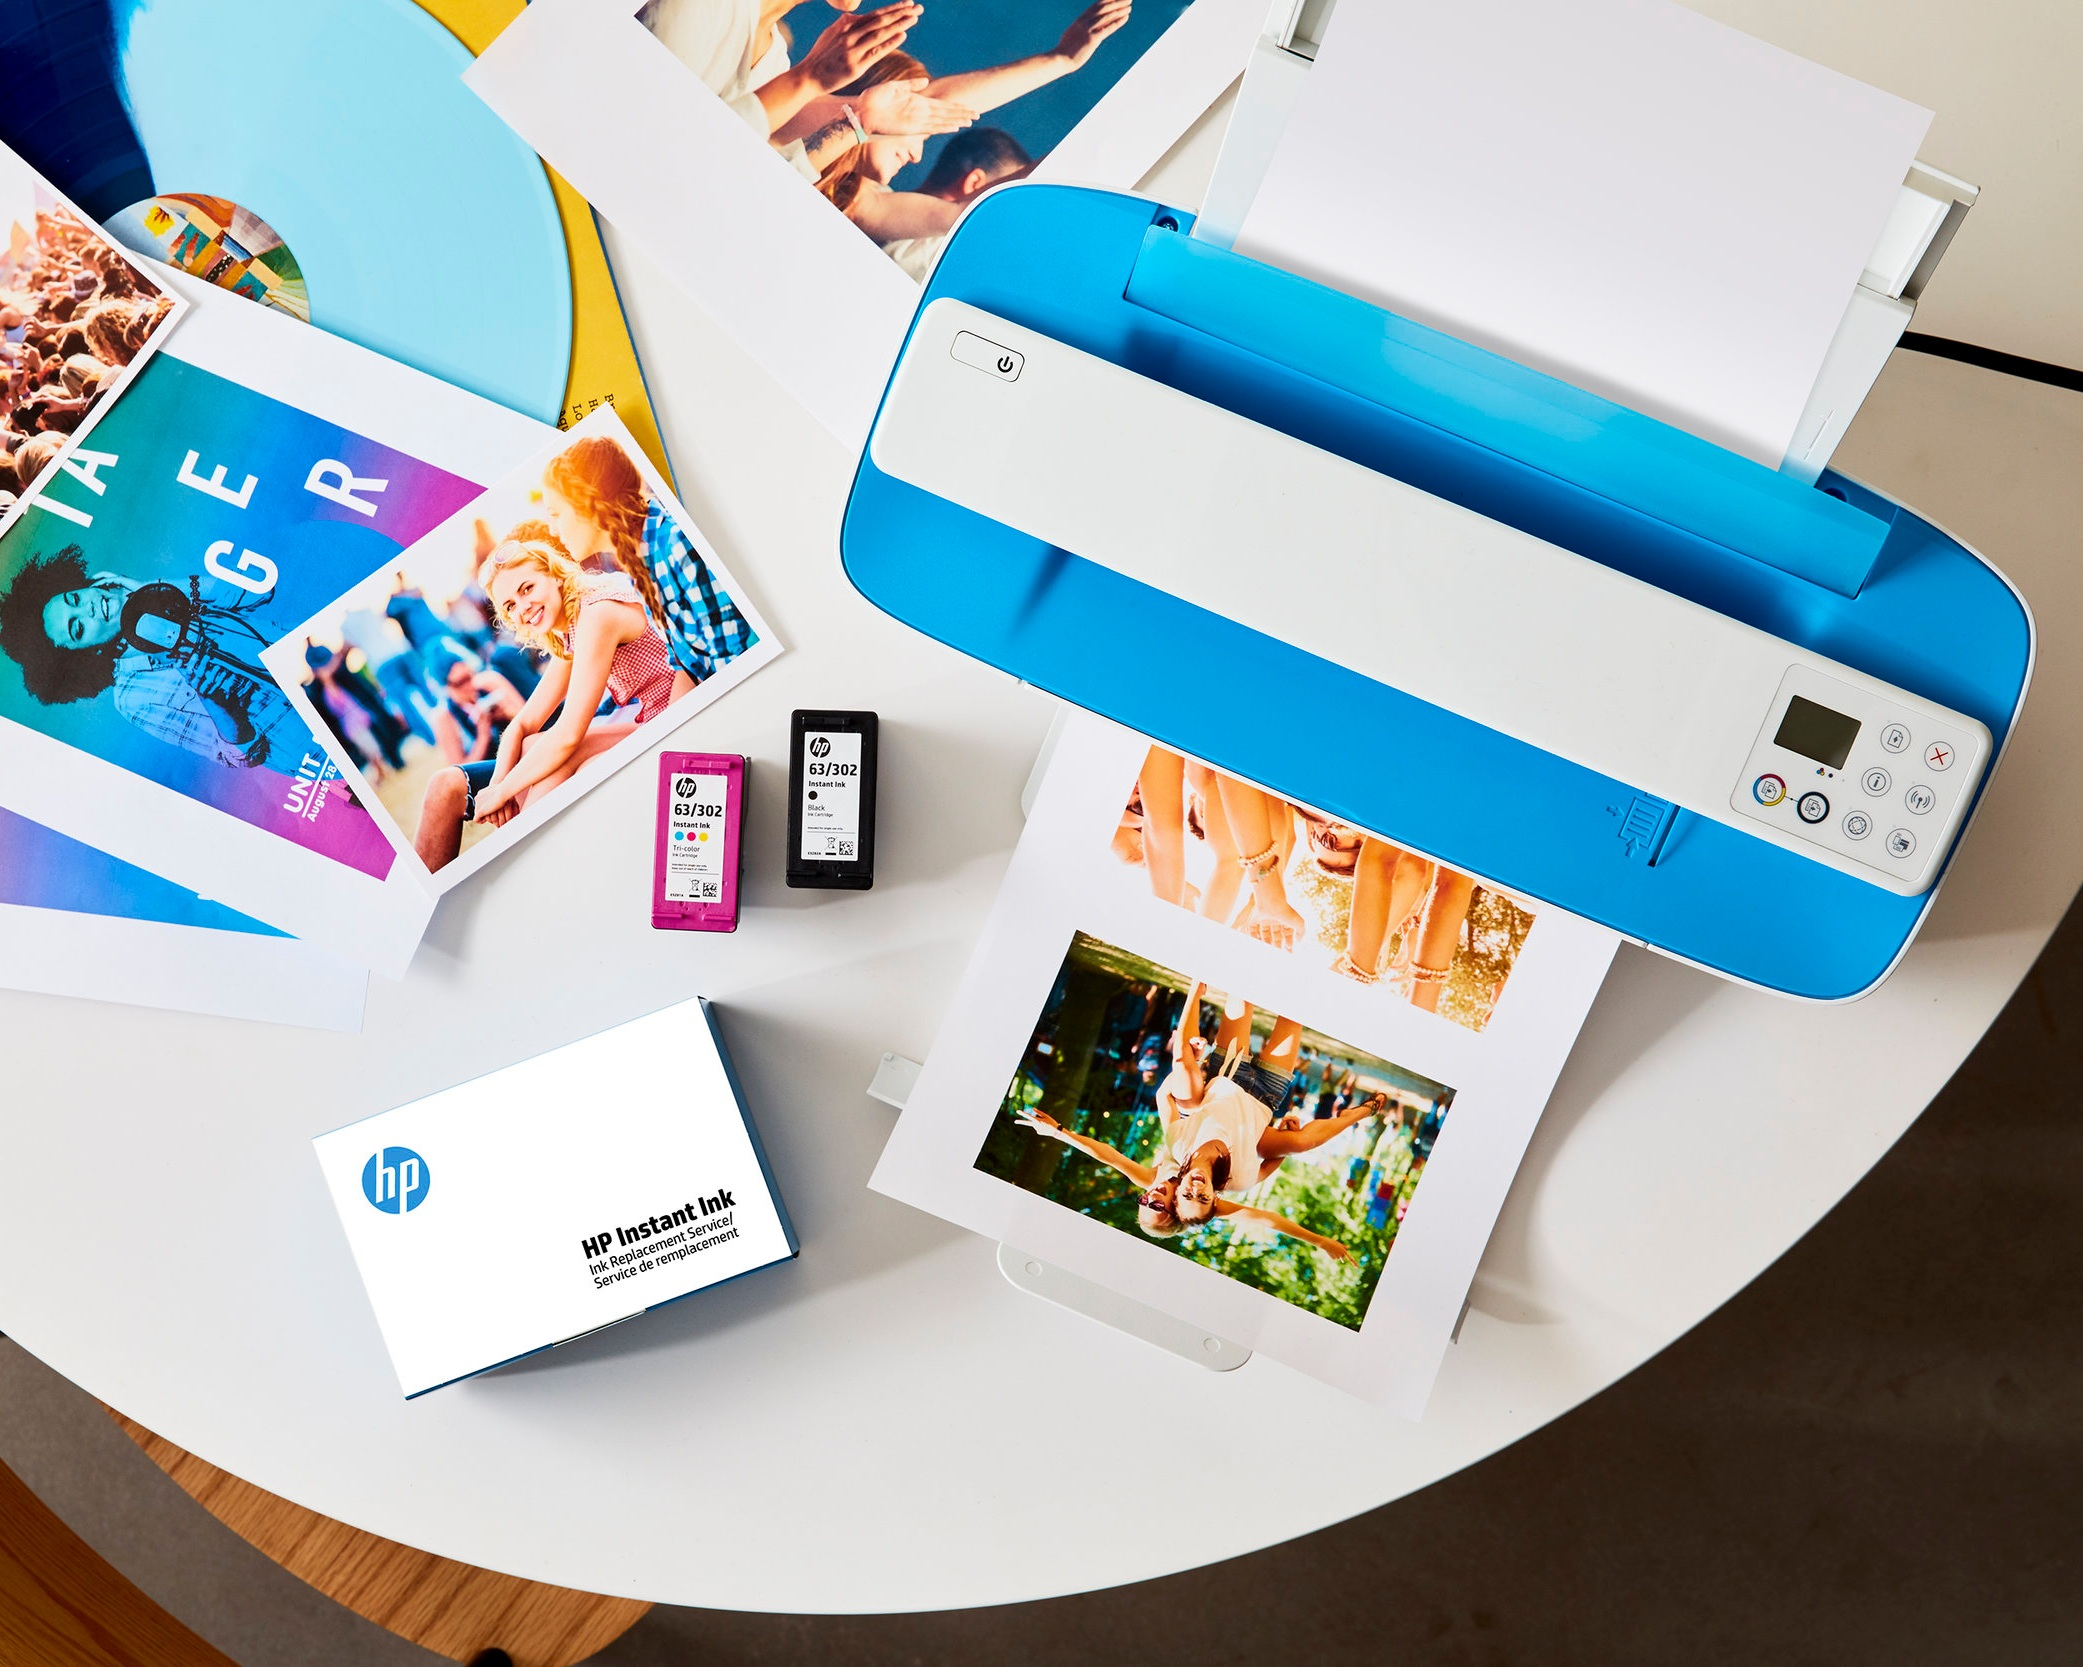 HP: Reinventing HP's ink subscription business